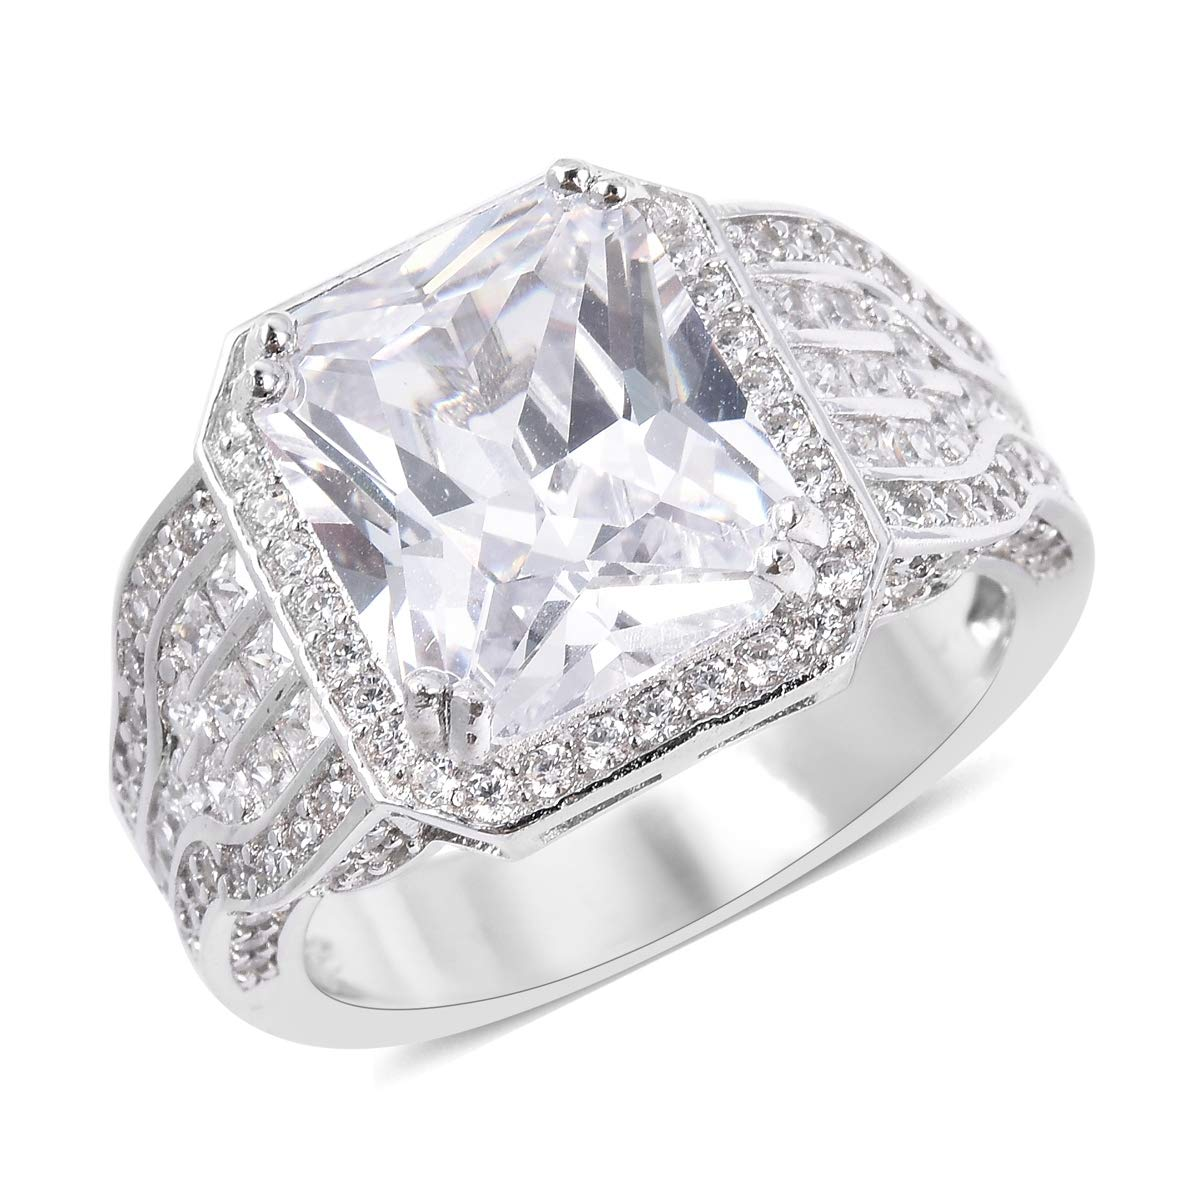 Promise Ring 925 Sterling Silver Octagon White Cubic Zirconia CZ Jewelry for Women Size 7 Ct 8.1 by Shop LC Delivering Joy